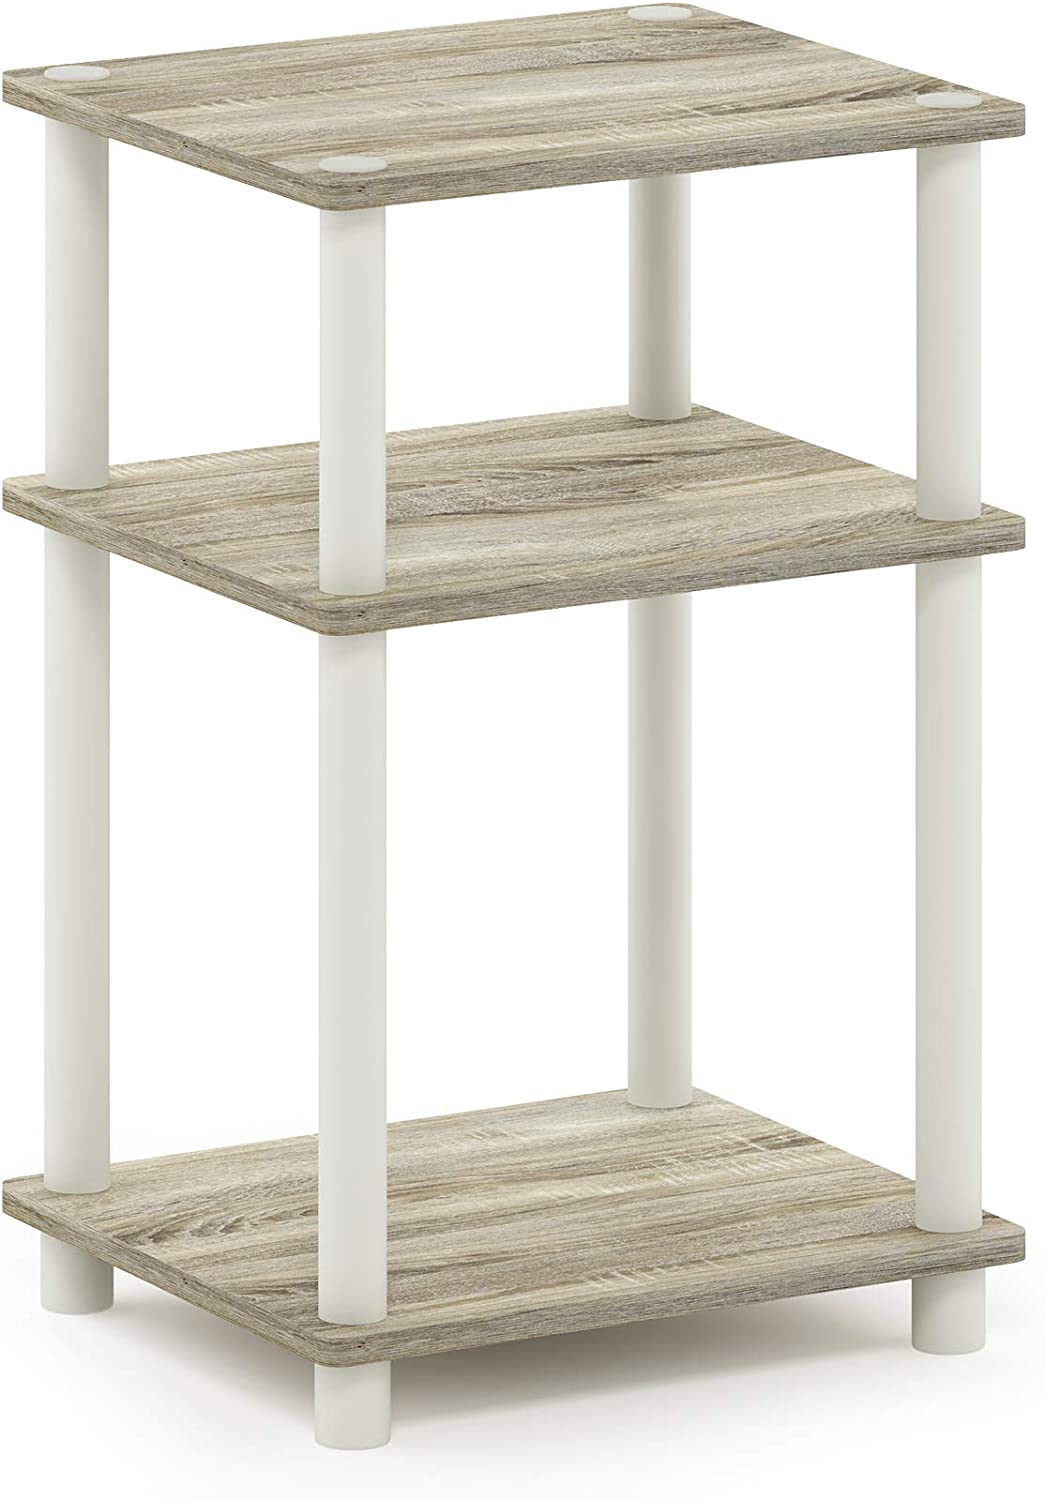 FURINNO Just Directly managed store 3-Tier Courier shipping free shipping End Table 1-Pack Oak White Sonoma